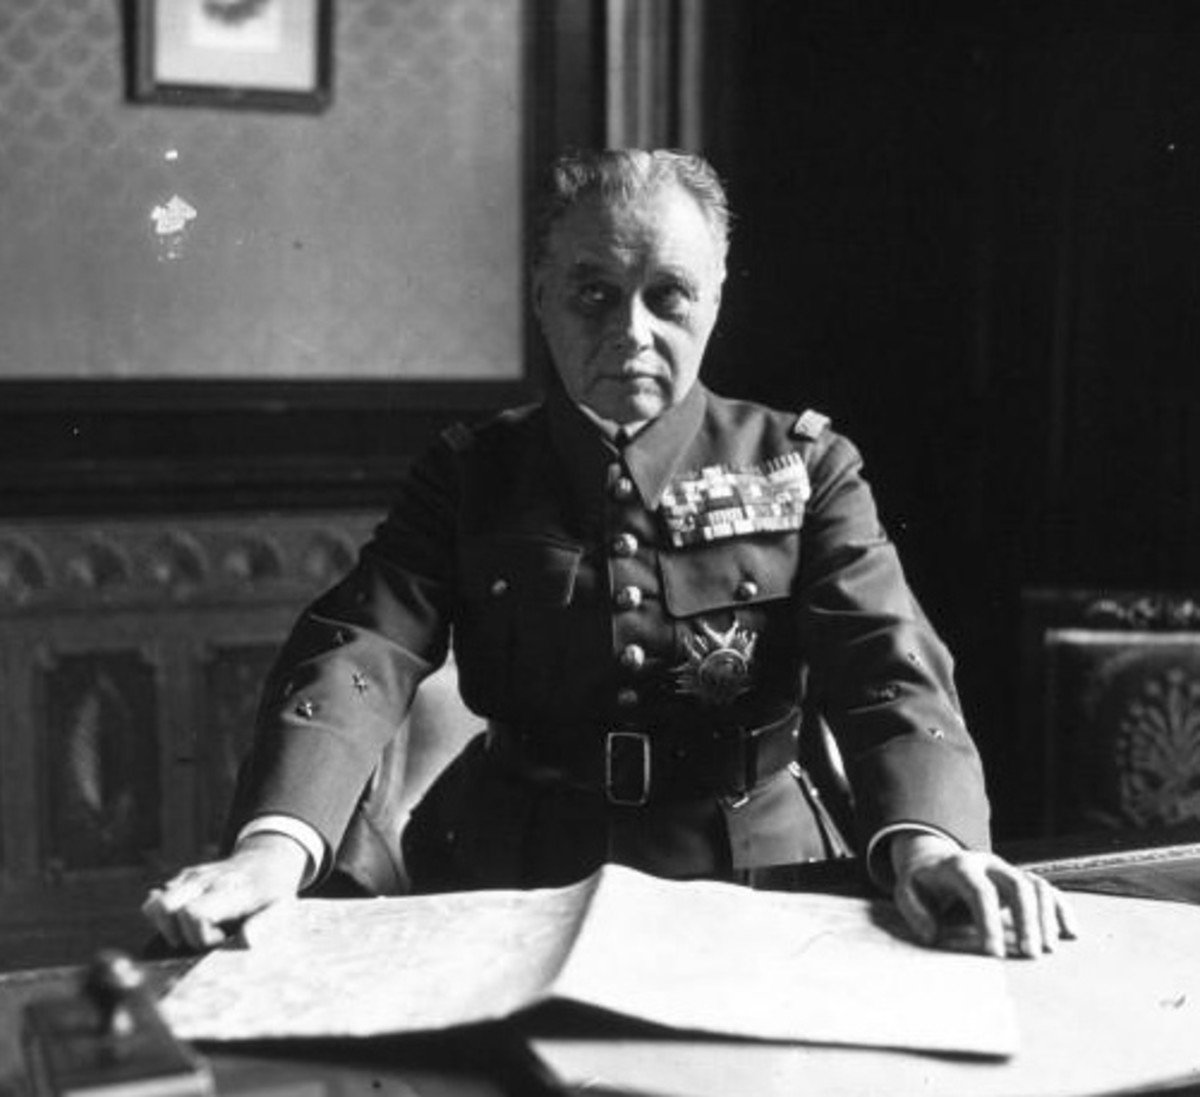 Maurice Gamelin, the commander of the French Army in 1940, the originator of the fateful Dyle plan, a tragically flawed commander. His tendency for emotional highs and lows rendered him depressed and unable to respond in 1940.